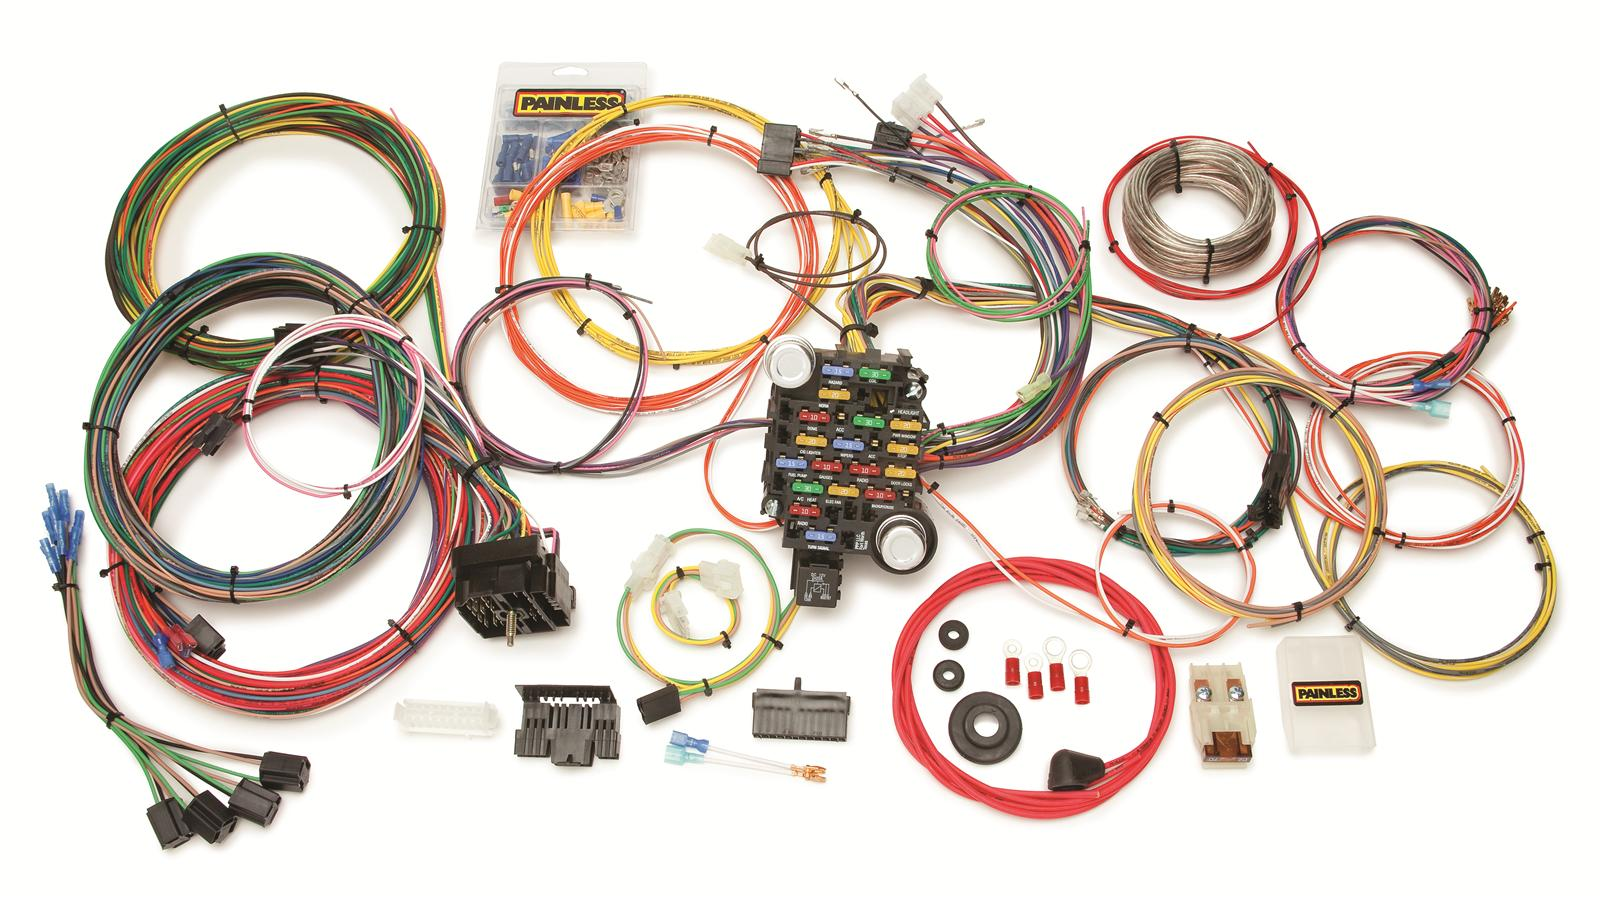 prf 10205_xl painless performance gmc chevy truck harnesses 10205 free wiring harness for chevy truck at bayanpartner.co